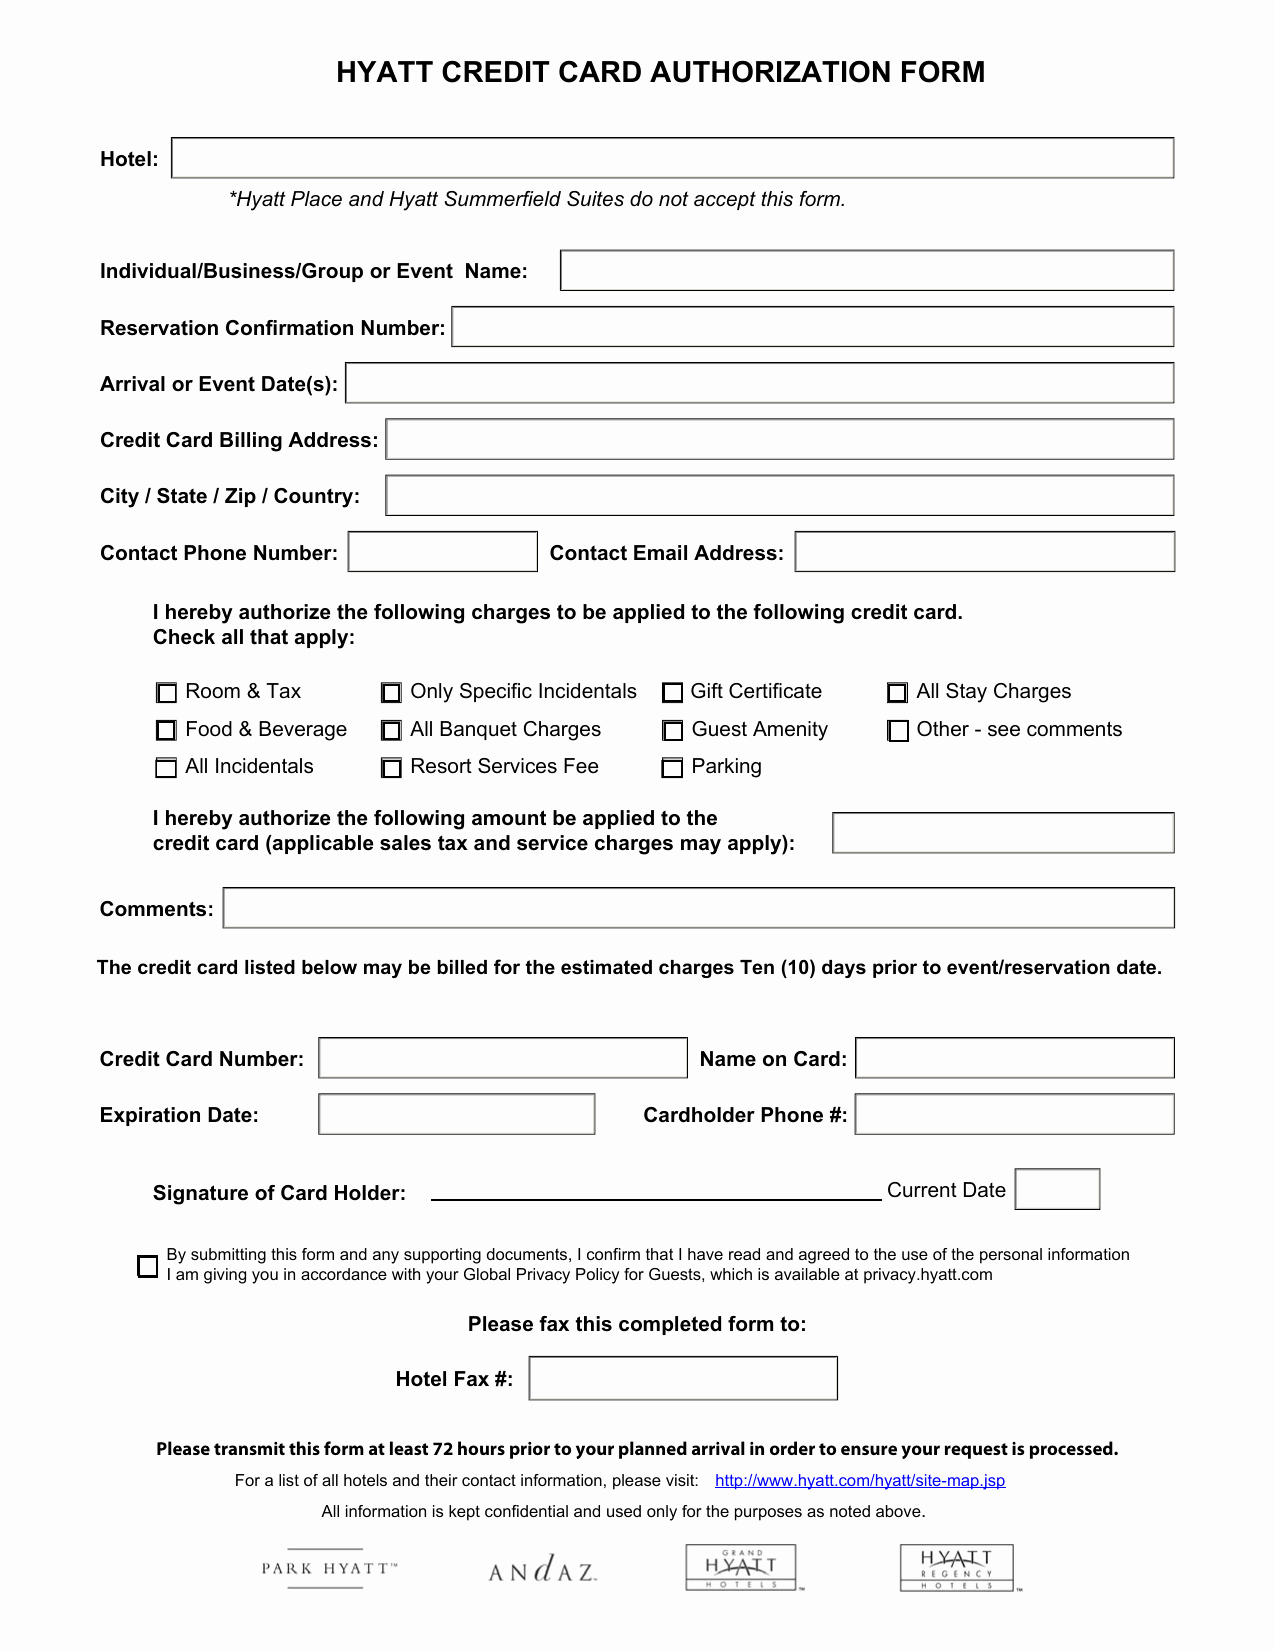 Credit Report Authorization form Template Beautiful Download Hyatt Credit Card Authorization form Template